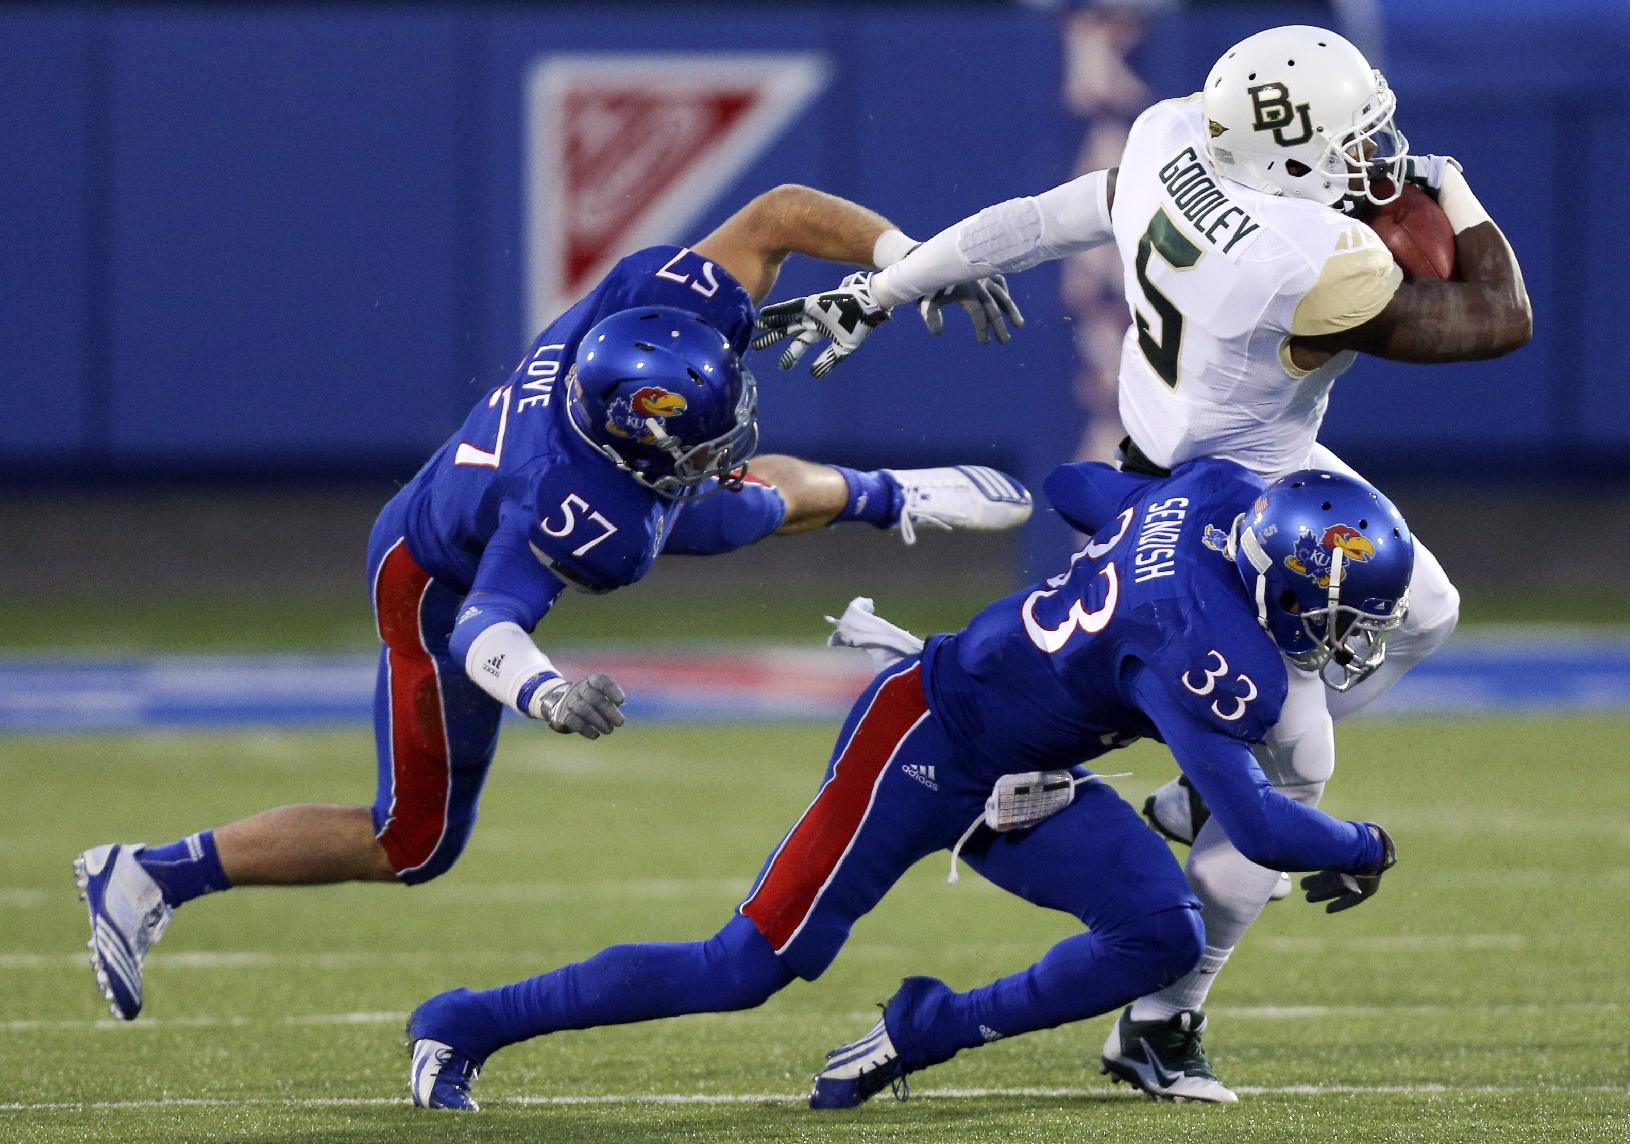 Baylor Bears wide receiver Antwan Goodley catches a pass against Kansas Jayhawks linebacker Jake Love (57) and Cassius Sendish (33) in the first quarter of an NCAA college football game Saturday, Oct. 26, 2013, in Lawrence, Kan